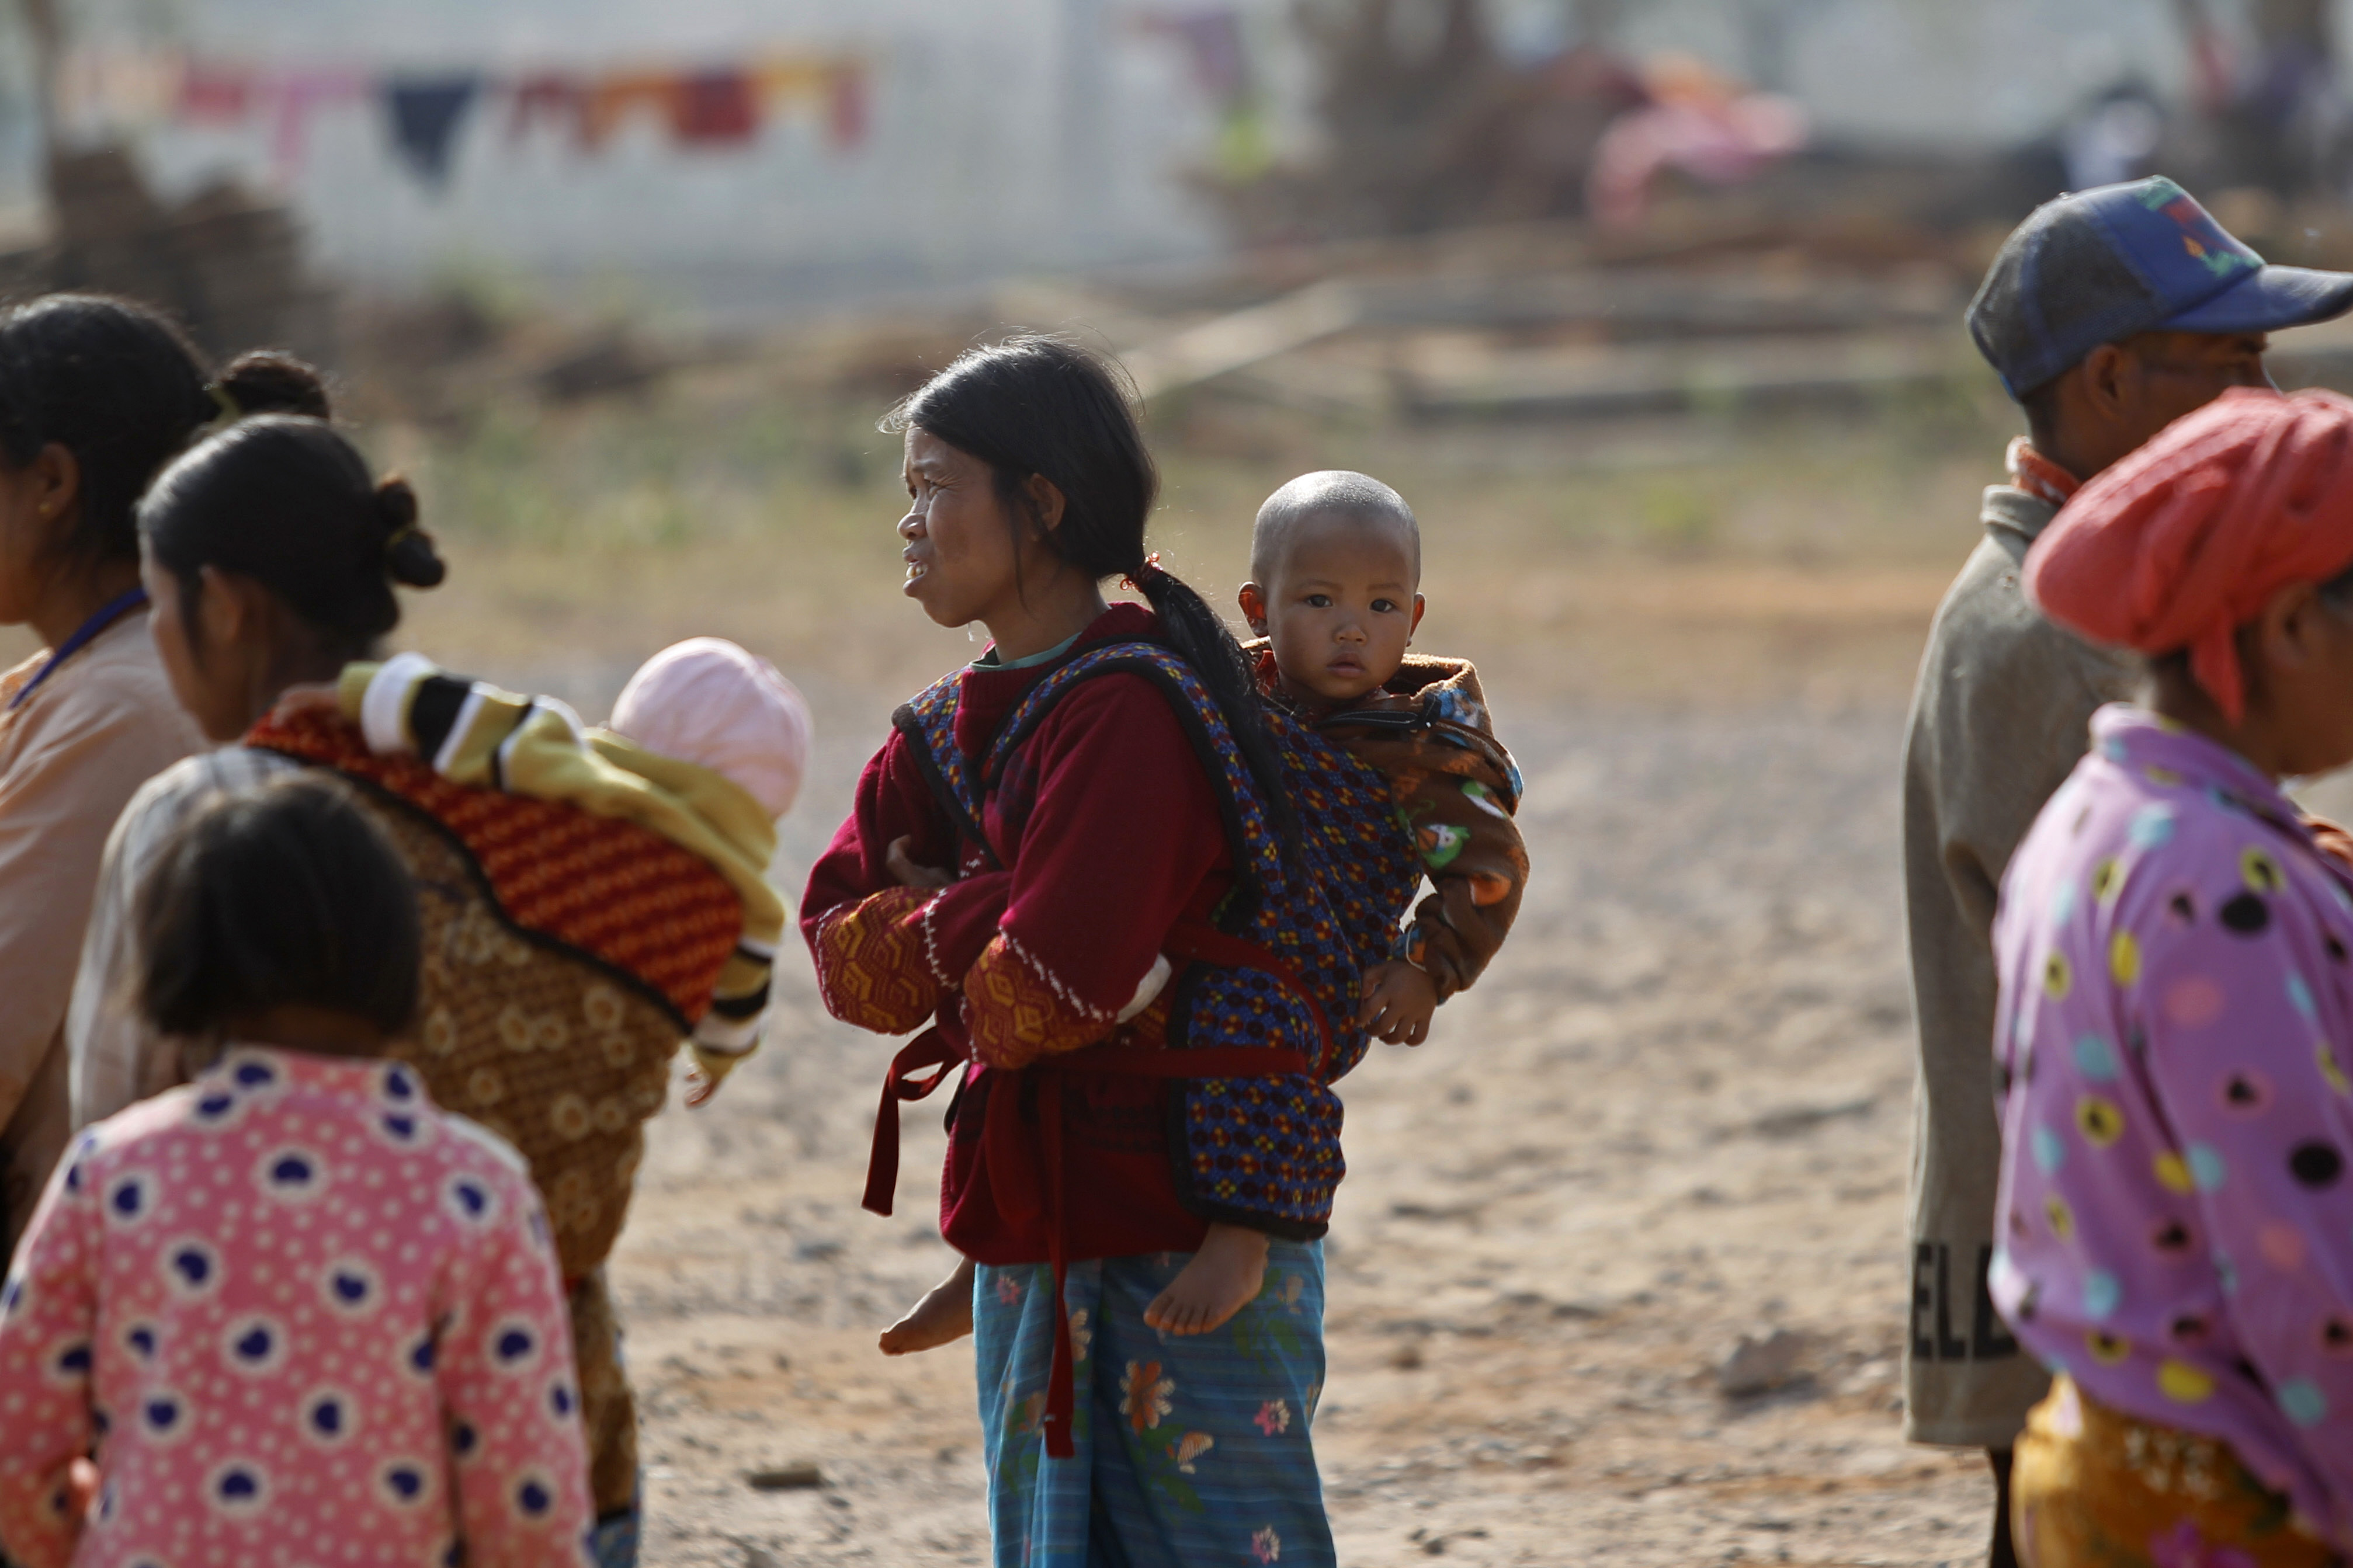 A woman carries her child on her back outside a monastery that has been set up as temporary refugee camp in Kyaukme, in Burma's northern Shan state, on Feb. 21, 2016